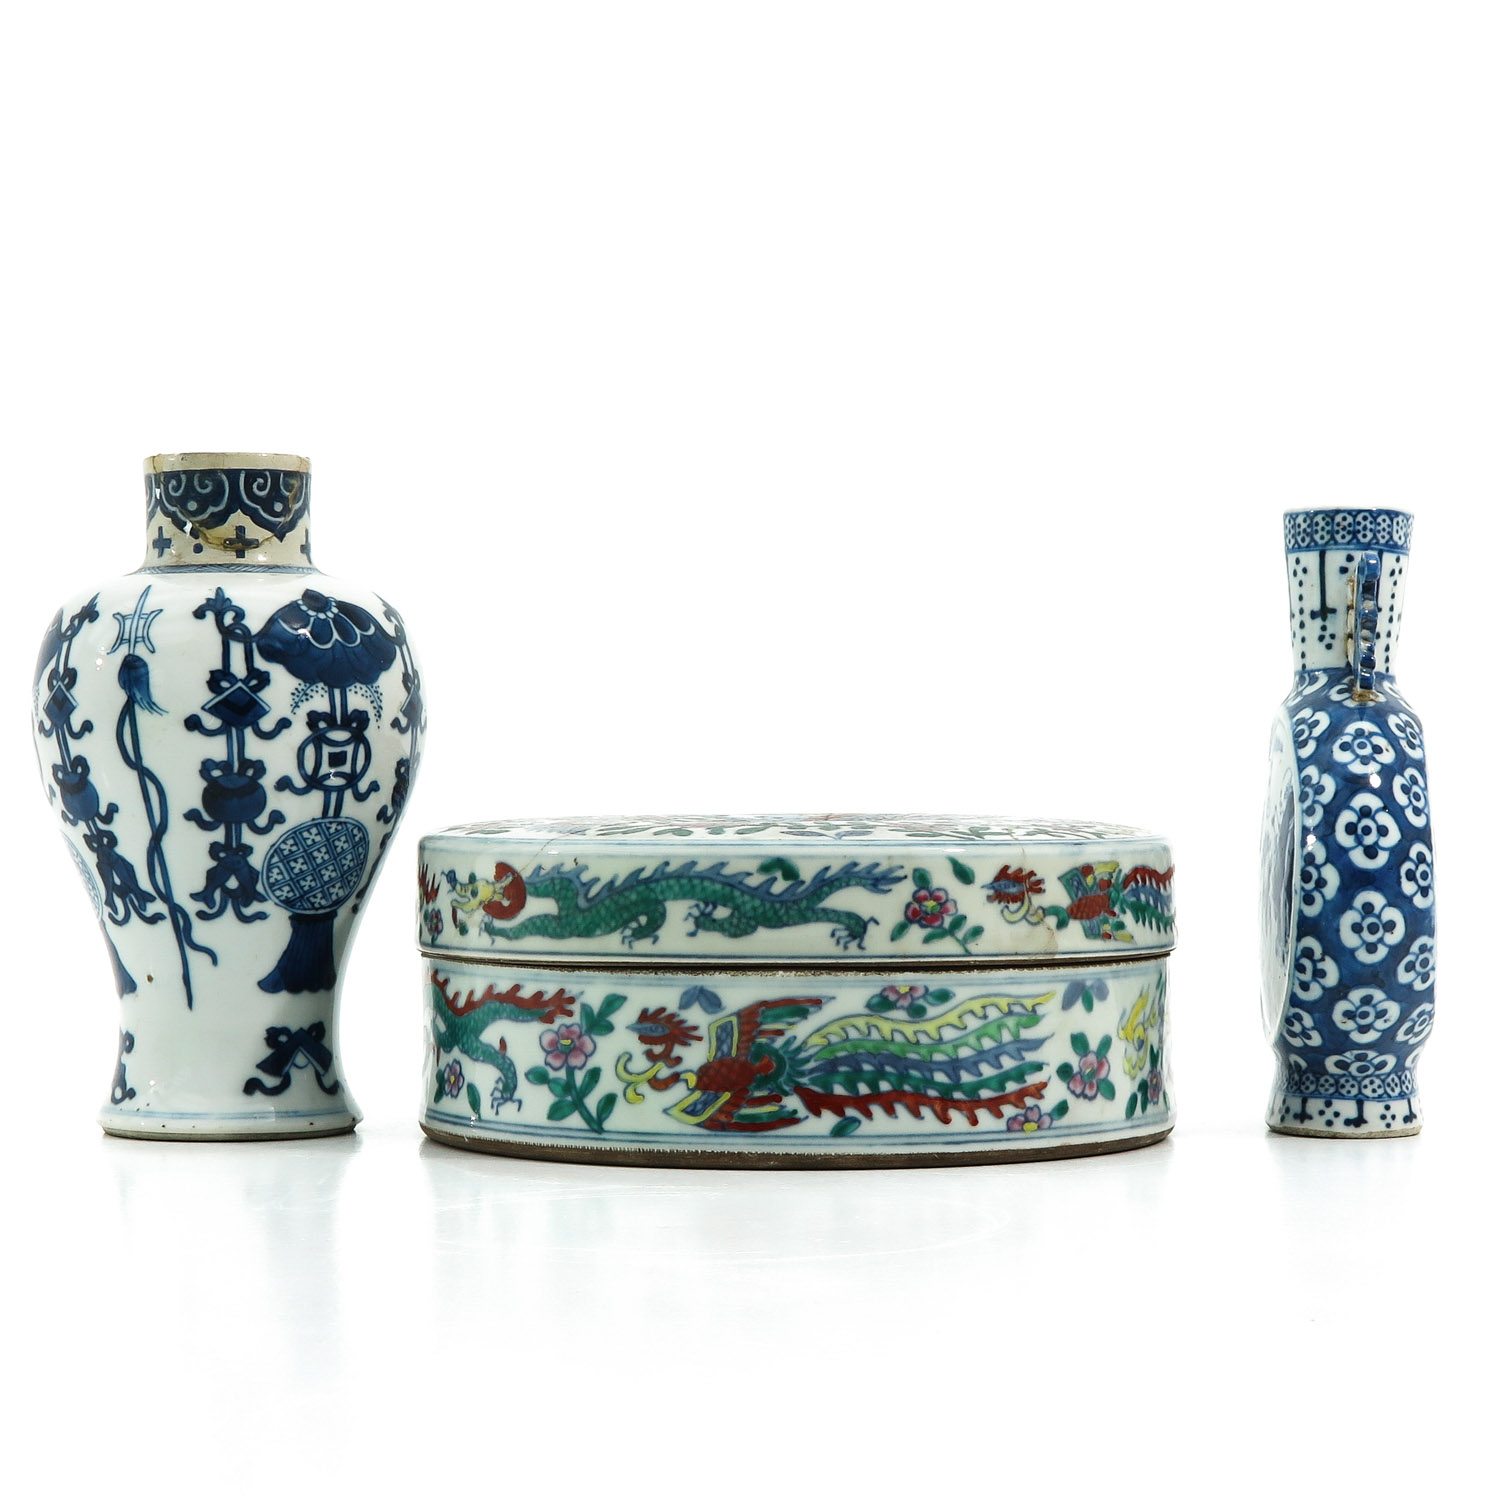 A Diverse Collection of Porcelain - Image 2 of 9